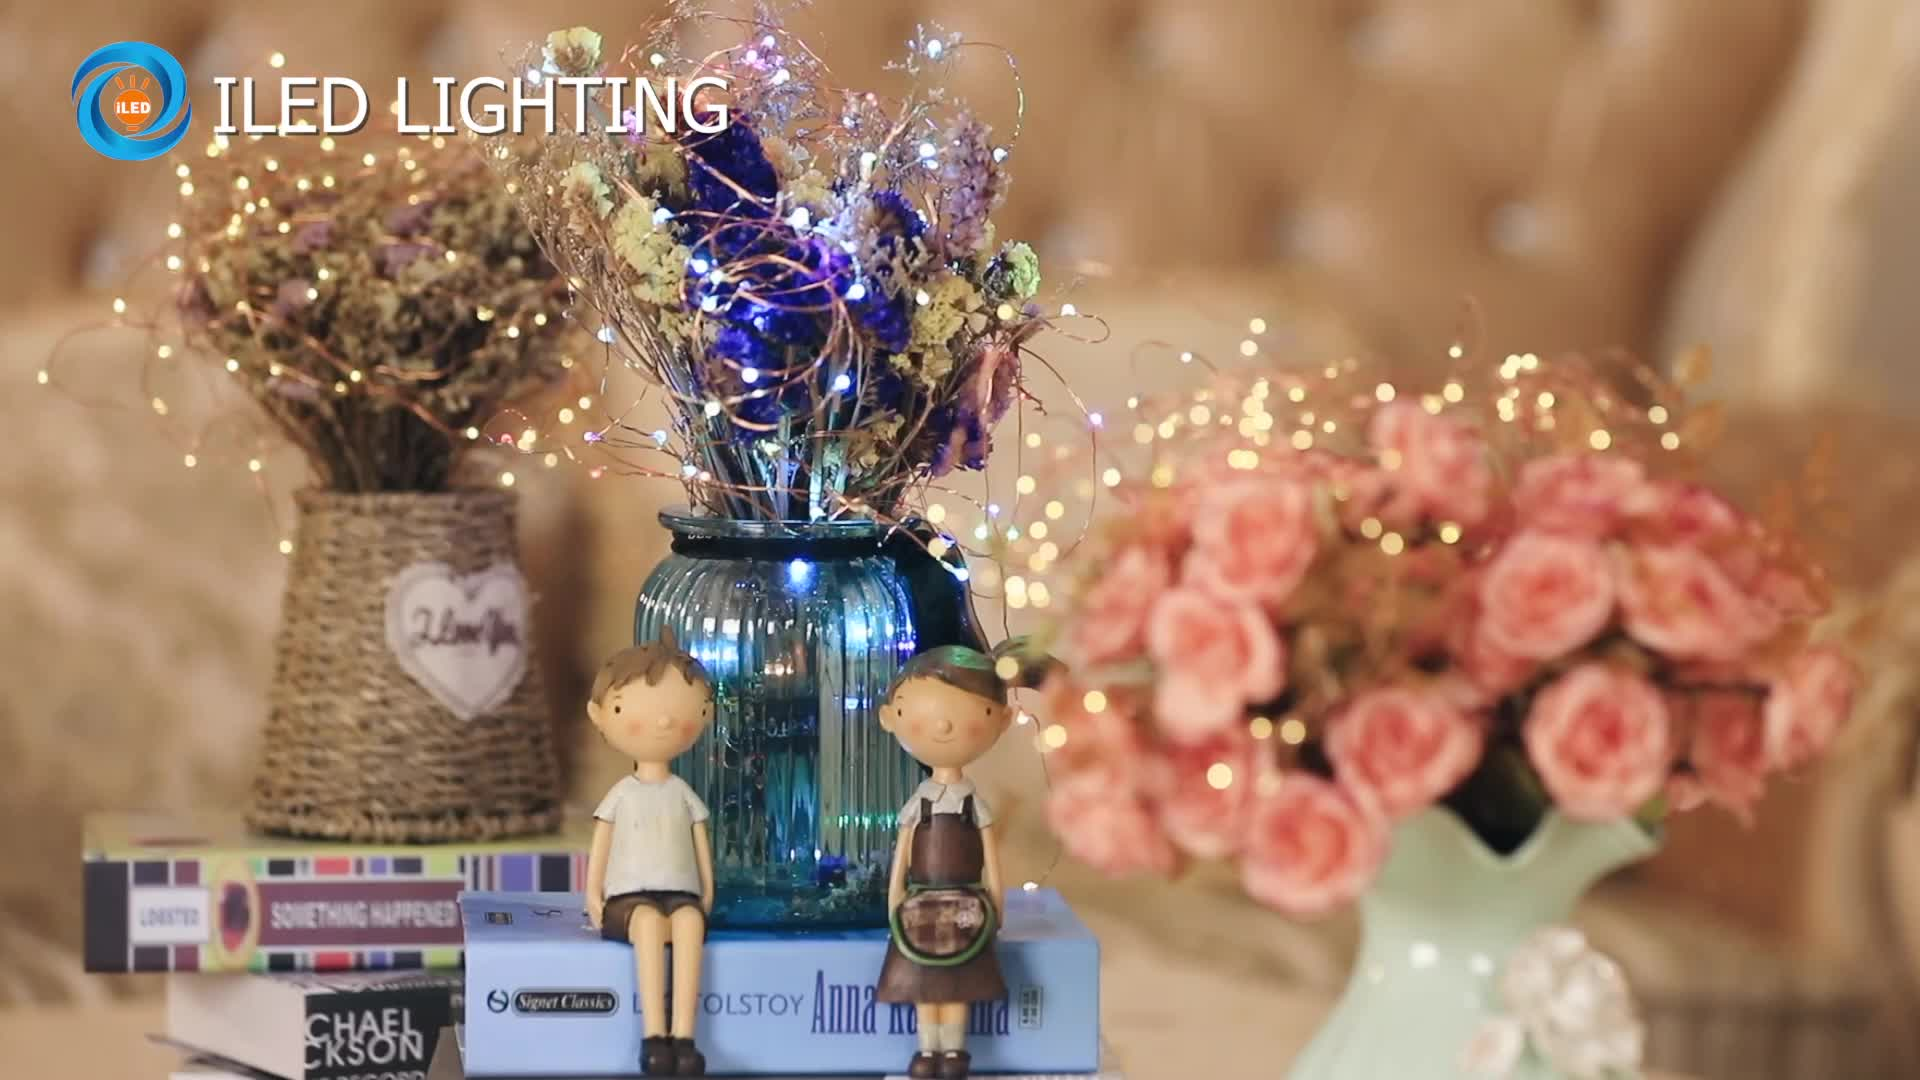 Remote Control 8 Models Outdoor Waterproof LED String Lights AA Battery Copper Silver Wire Fairy Warm White RGB Lights